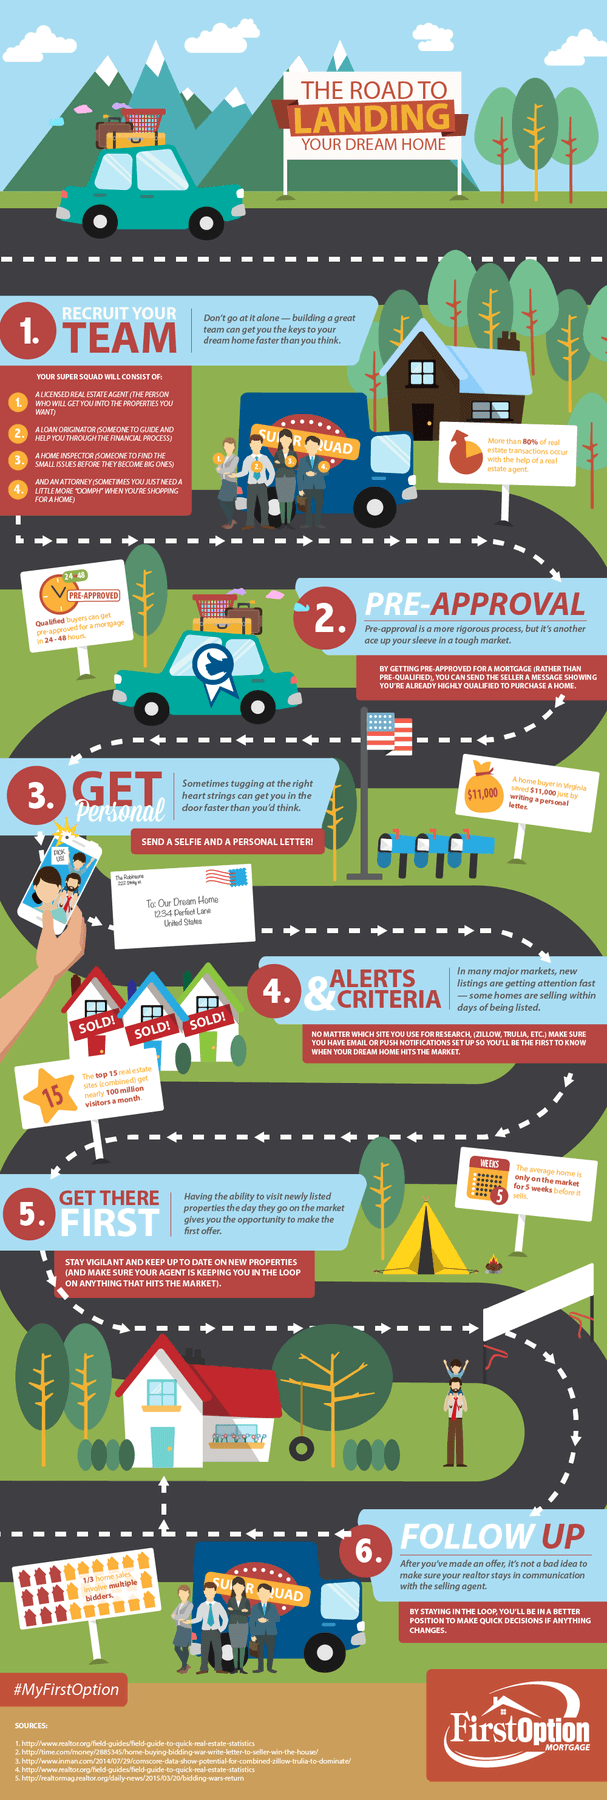 Six easy steps to buying a house. From getting a mortgage loan to making an offer.